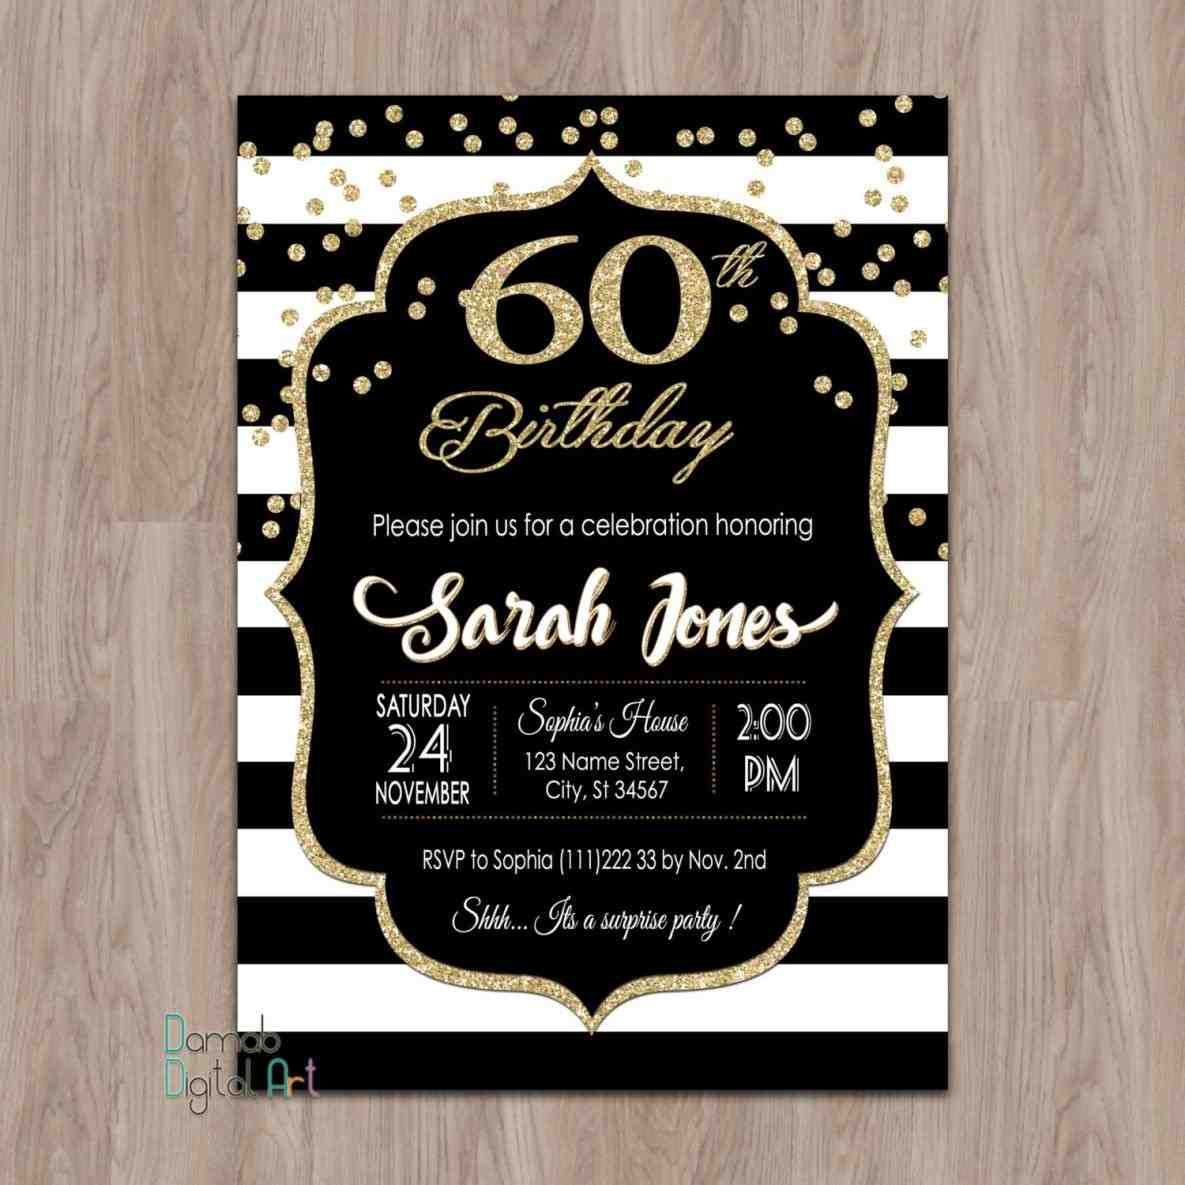 Full Size Of Design30th Birthday Invitation Template Together With Surprise Party Invitations Free Download Design60th